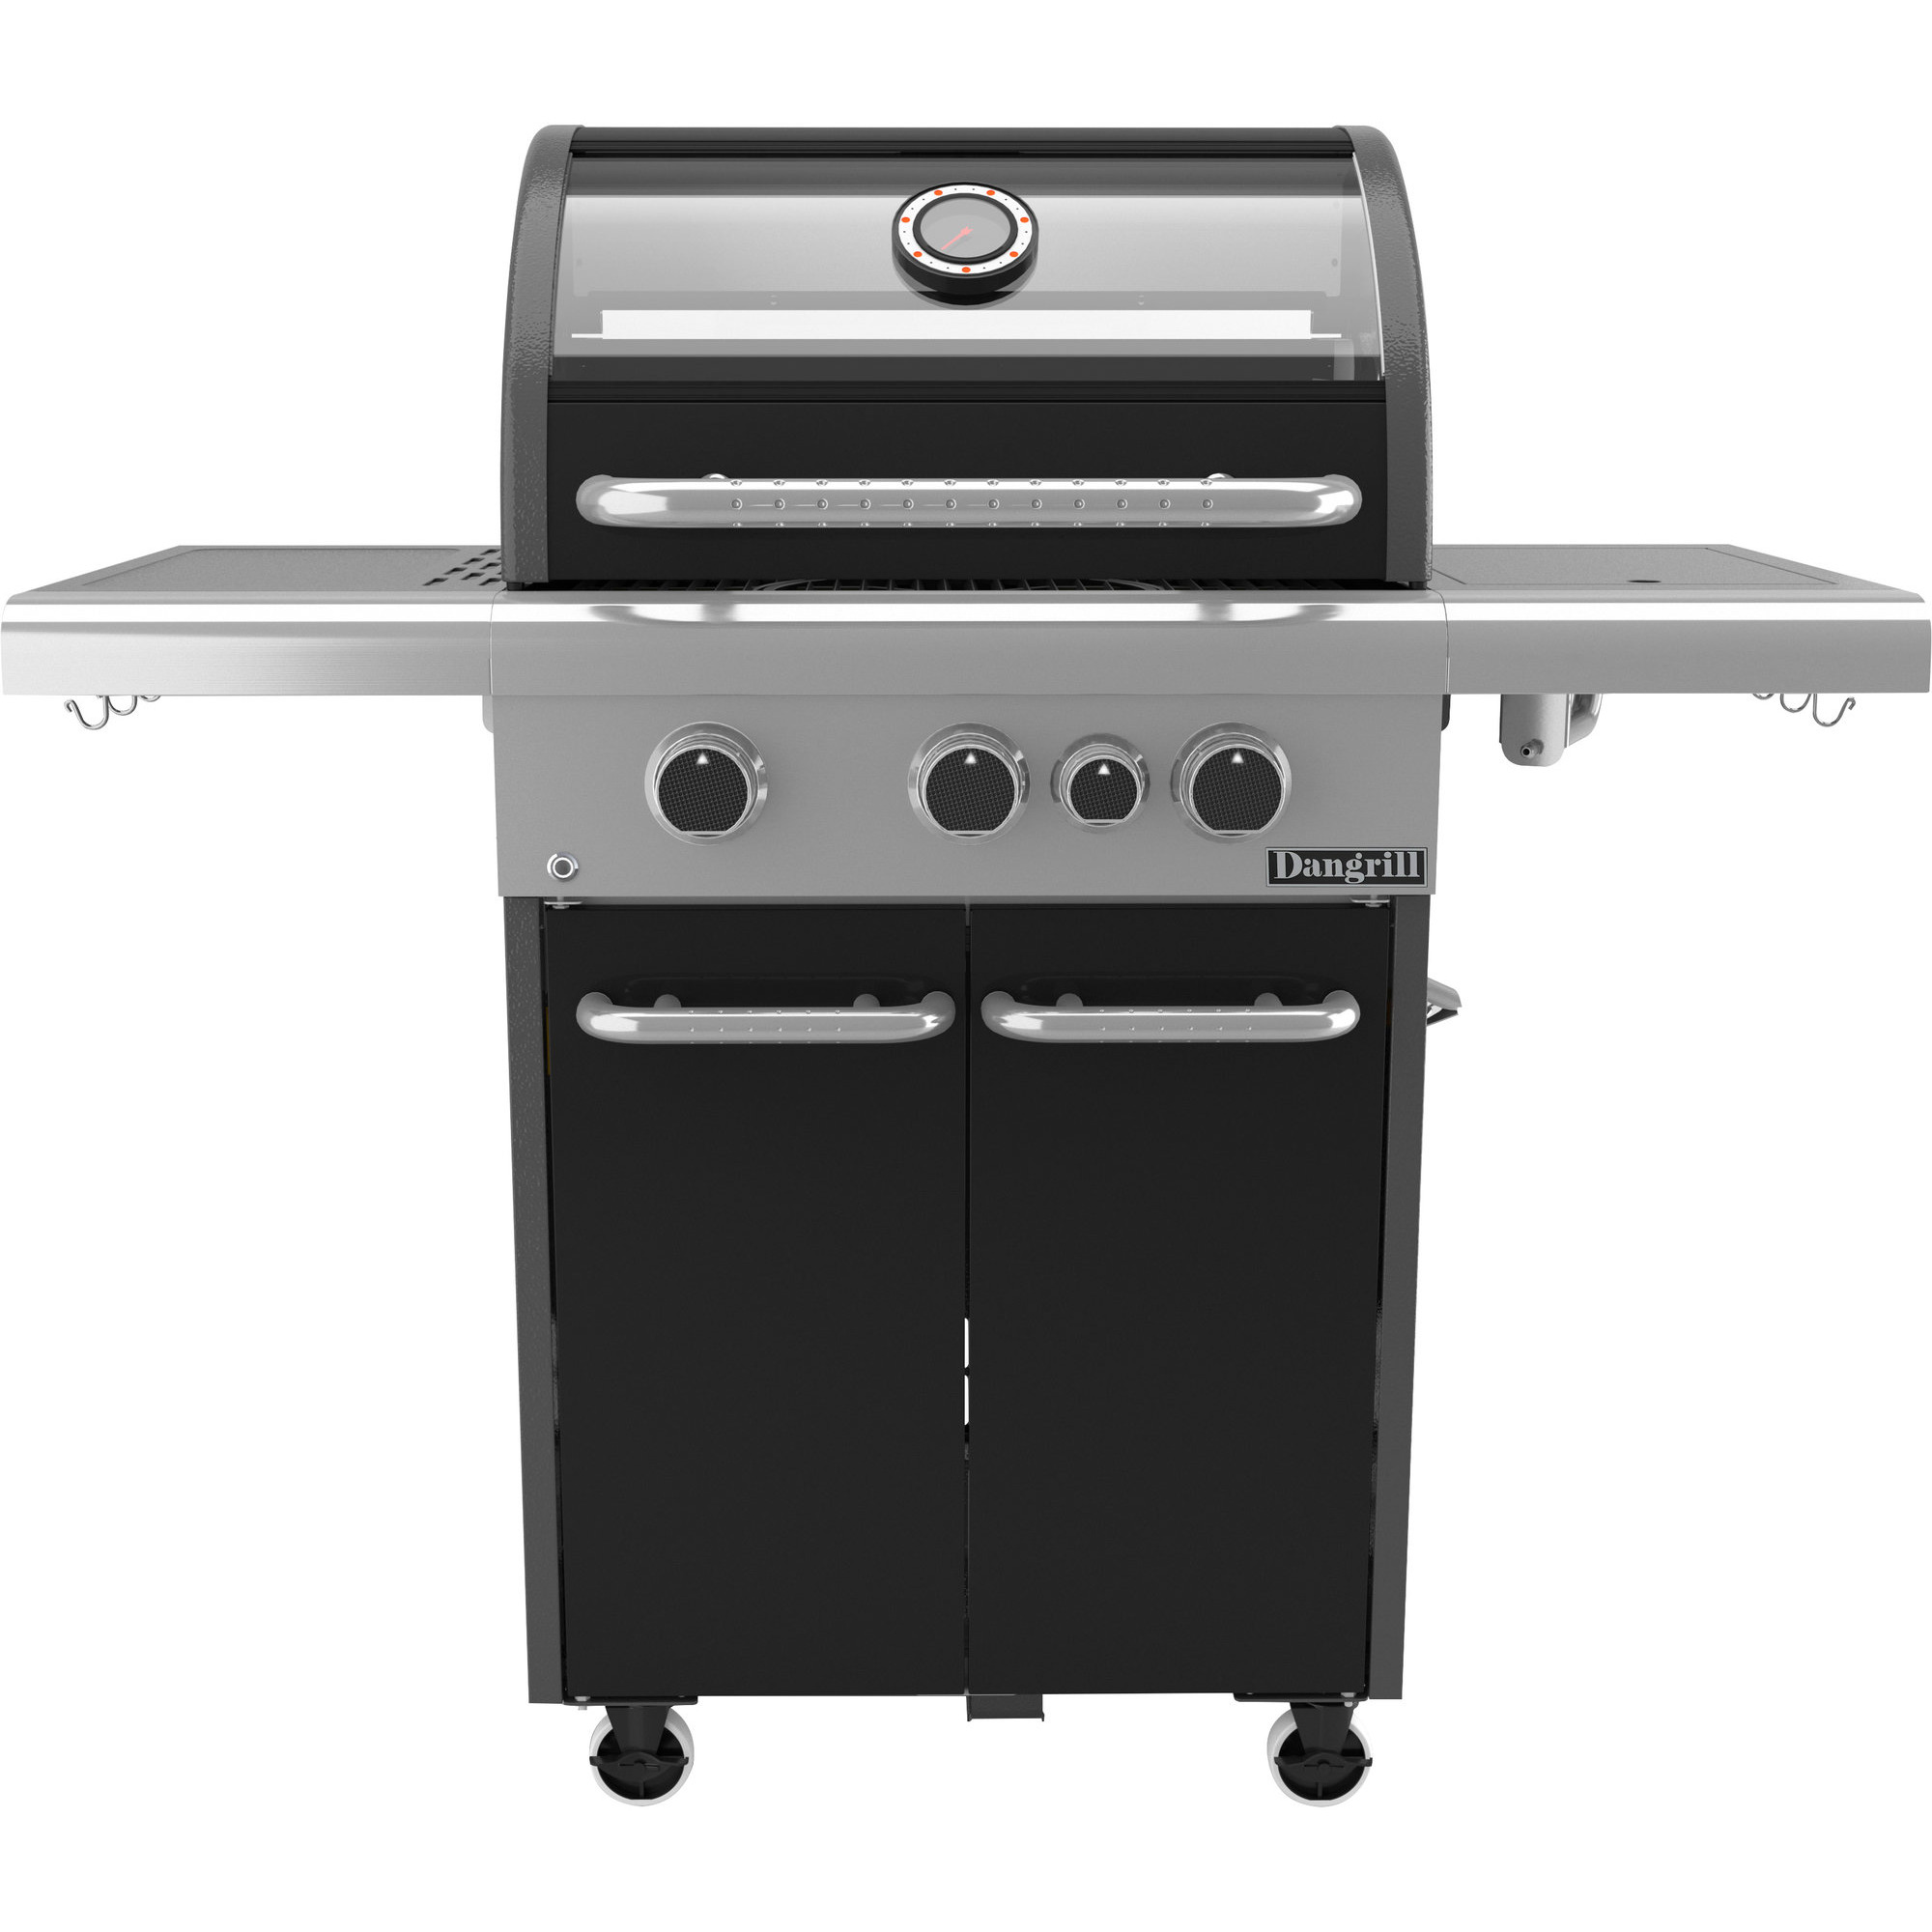 Dangrill Odin 310 CS gasolgrill